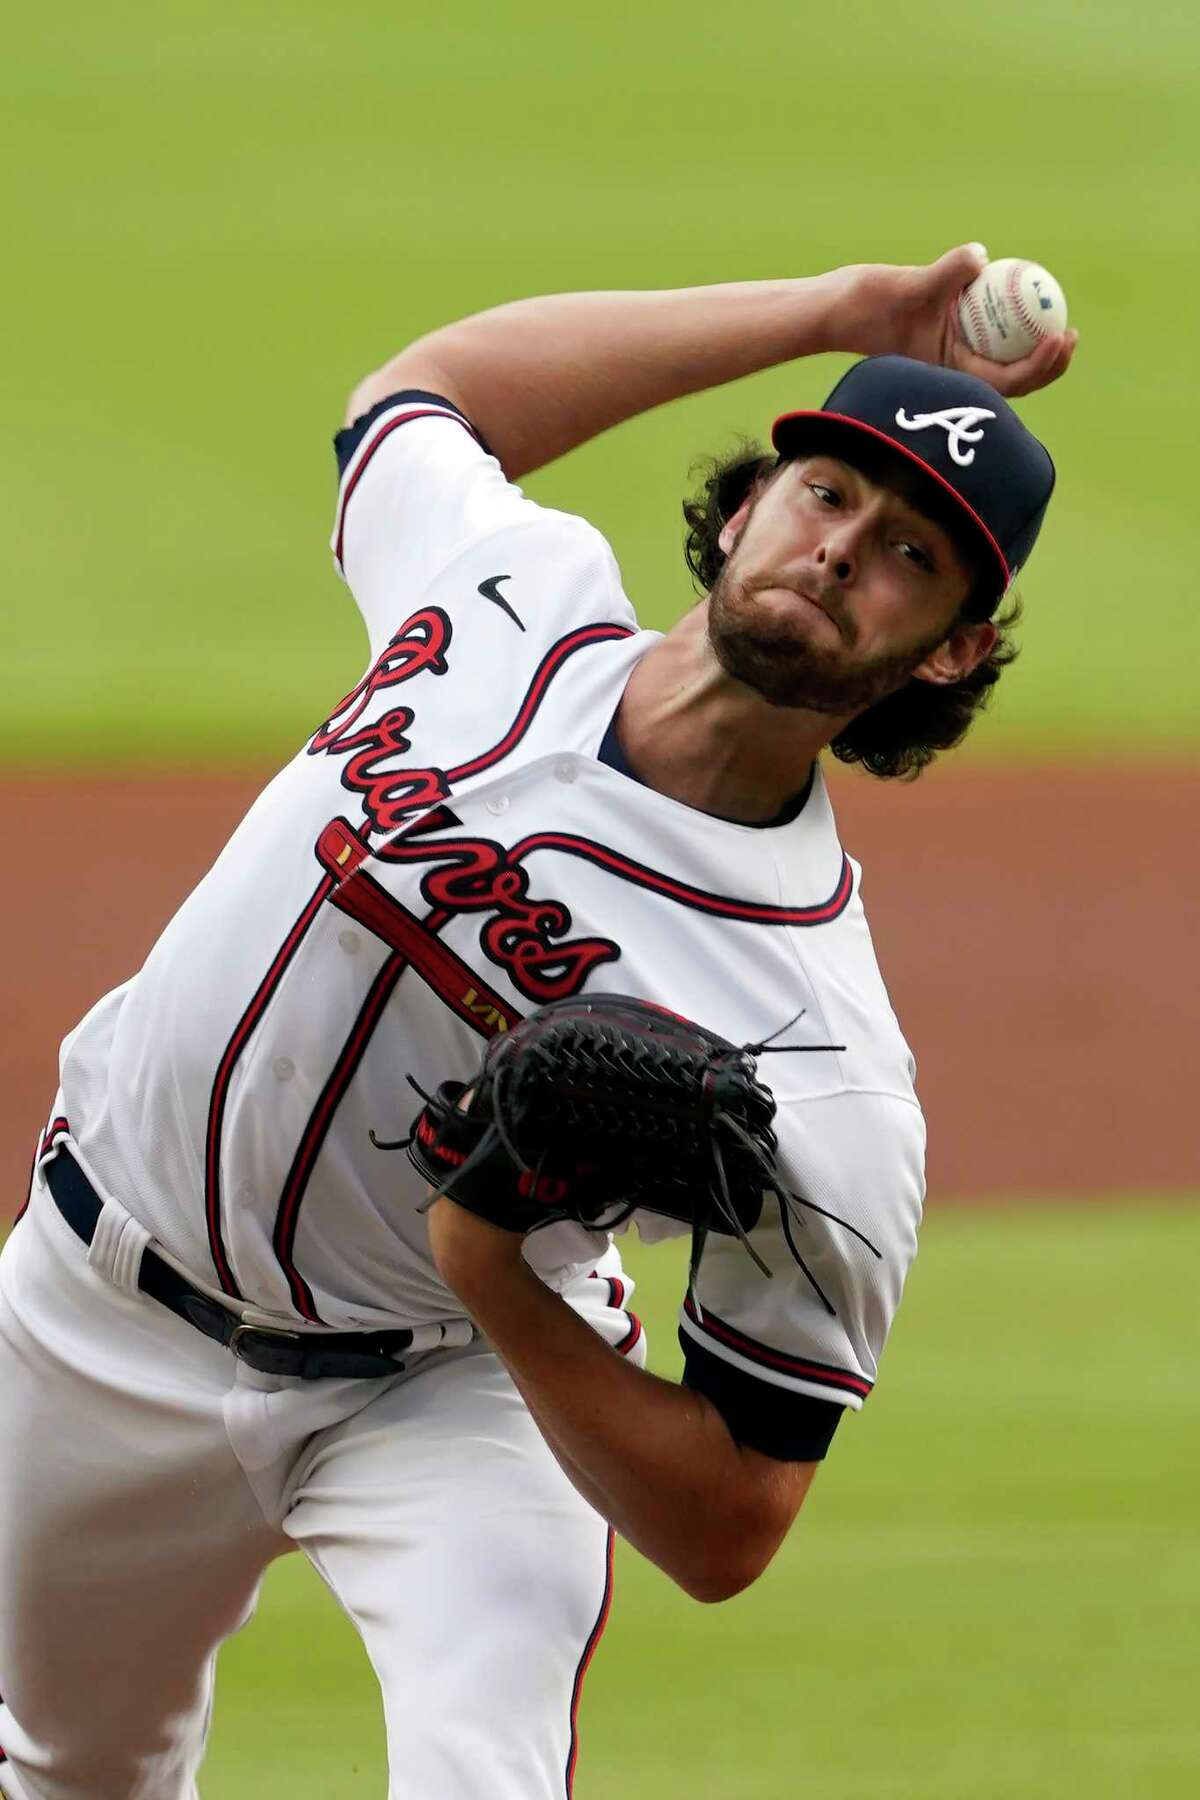 Atlanta Braves starting pitcher Ian Anderson works against the New York Yankees during the fourth inning of the first game of baseball doubleheader Wednesday, Aug. 26, 2020, in Atlanta.